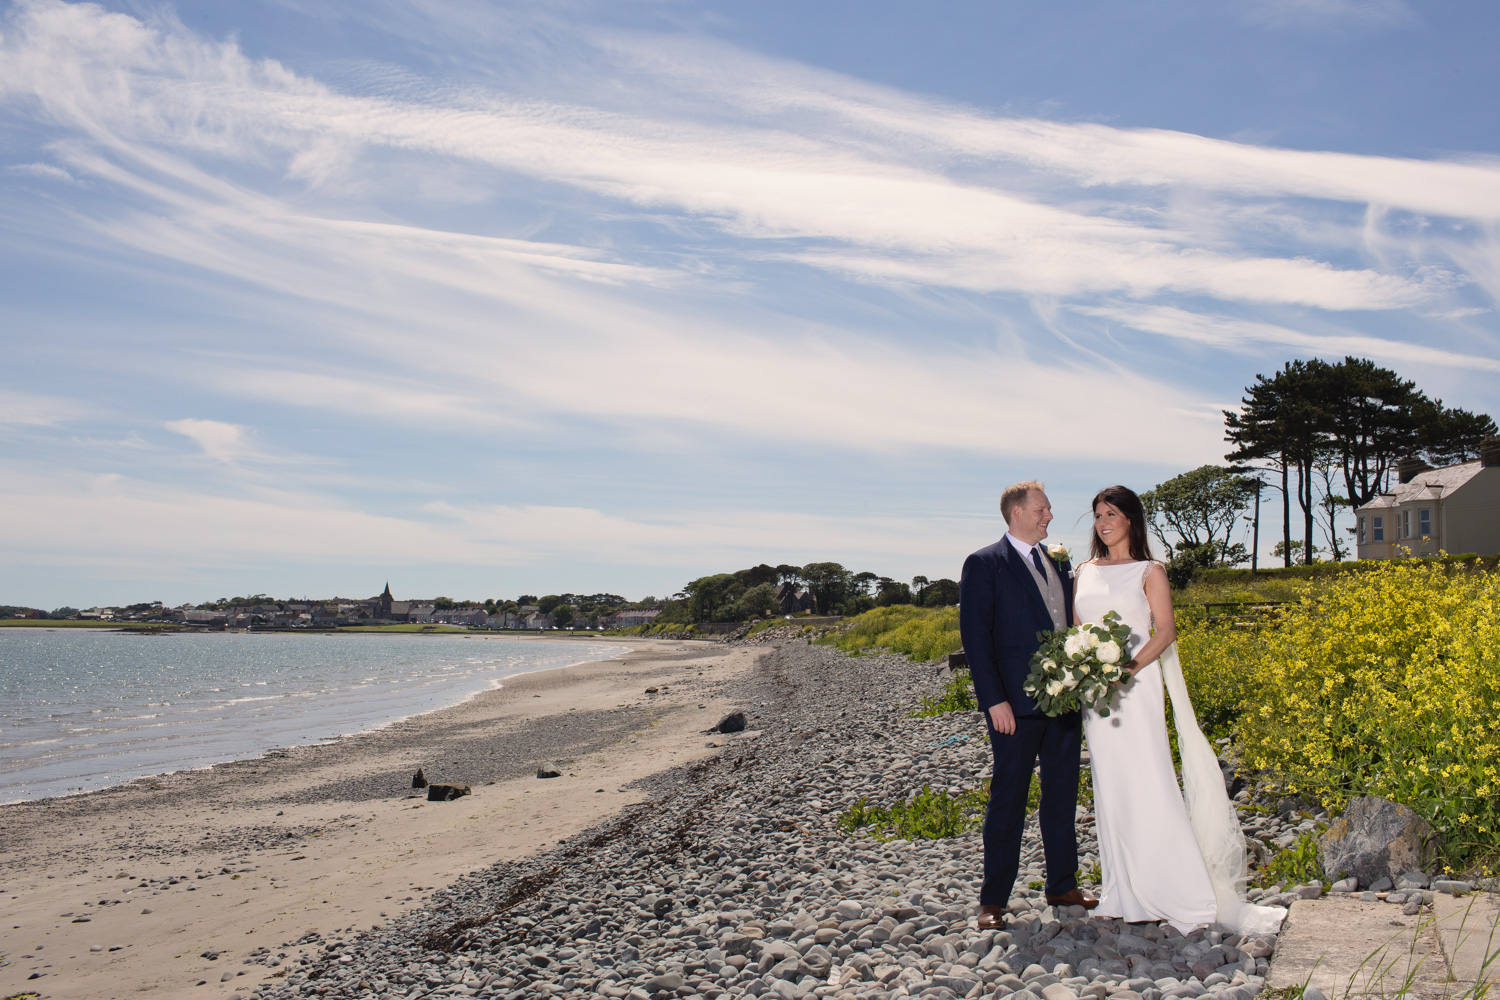 Mark_Barnes_Northern_Ireland_wedding_photographer_Kilmore_House_Wedding_photography_Kilmore_House_wedding_photographer-29.jpg